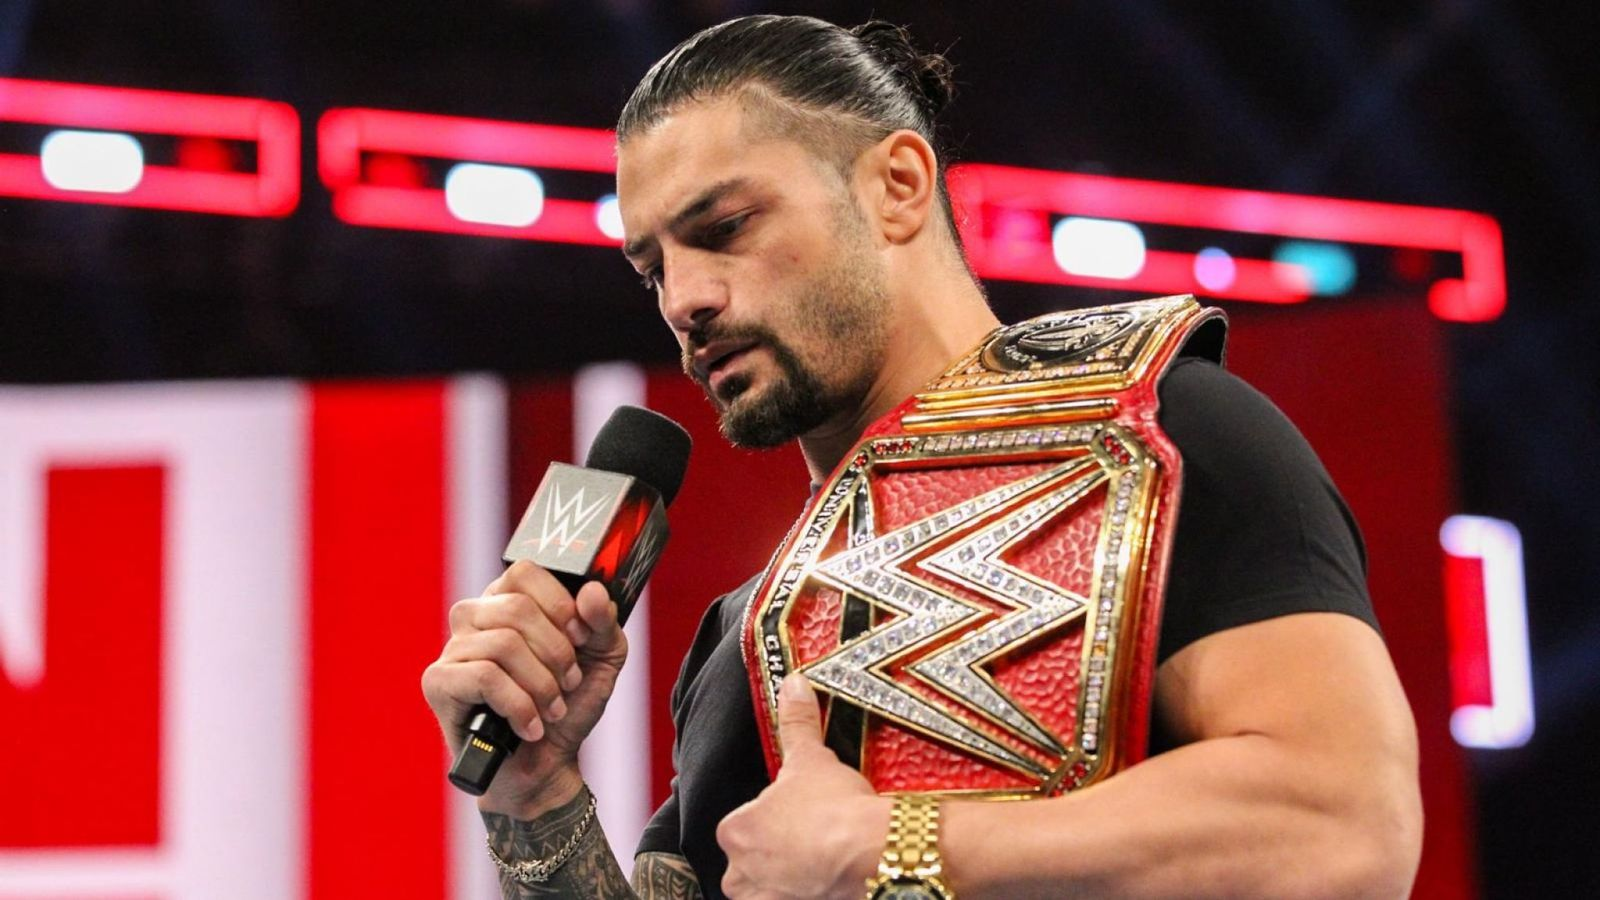 WWE Superstar Roman Reigns Diagnosed with Leukemia, Relinquishes Universal Championship